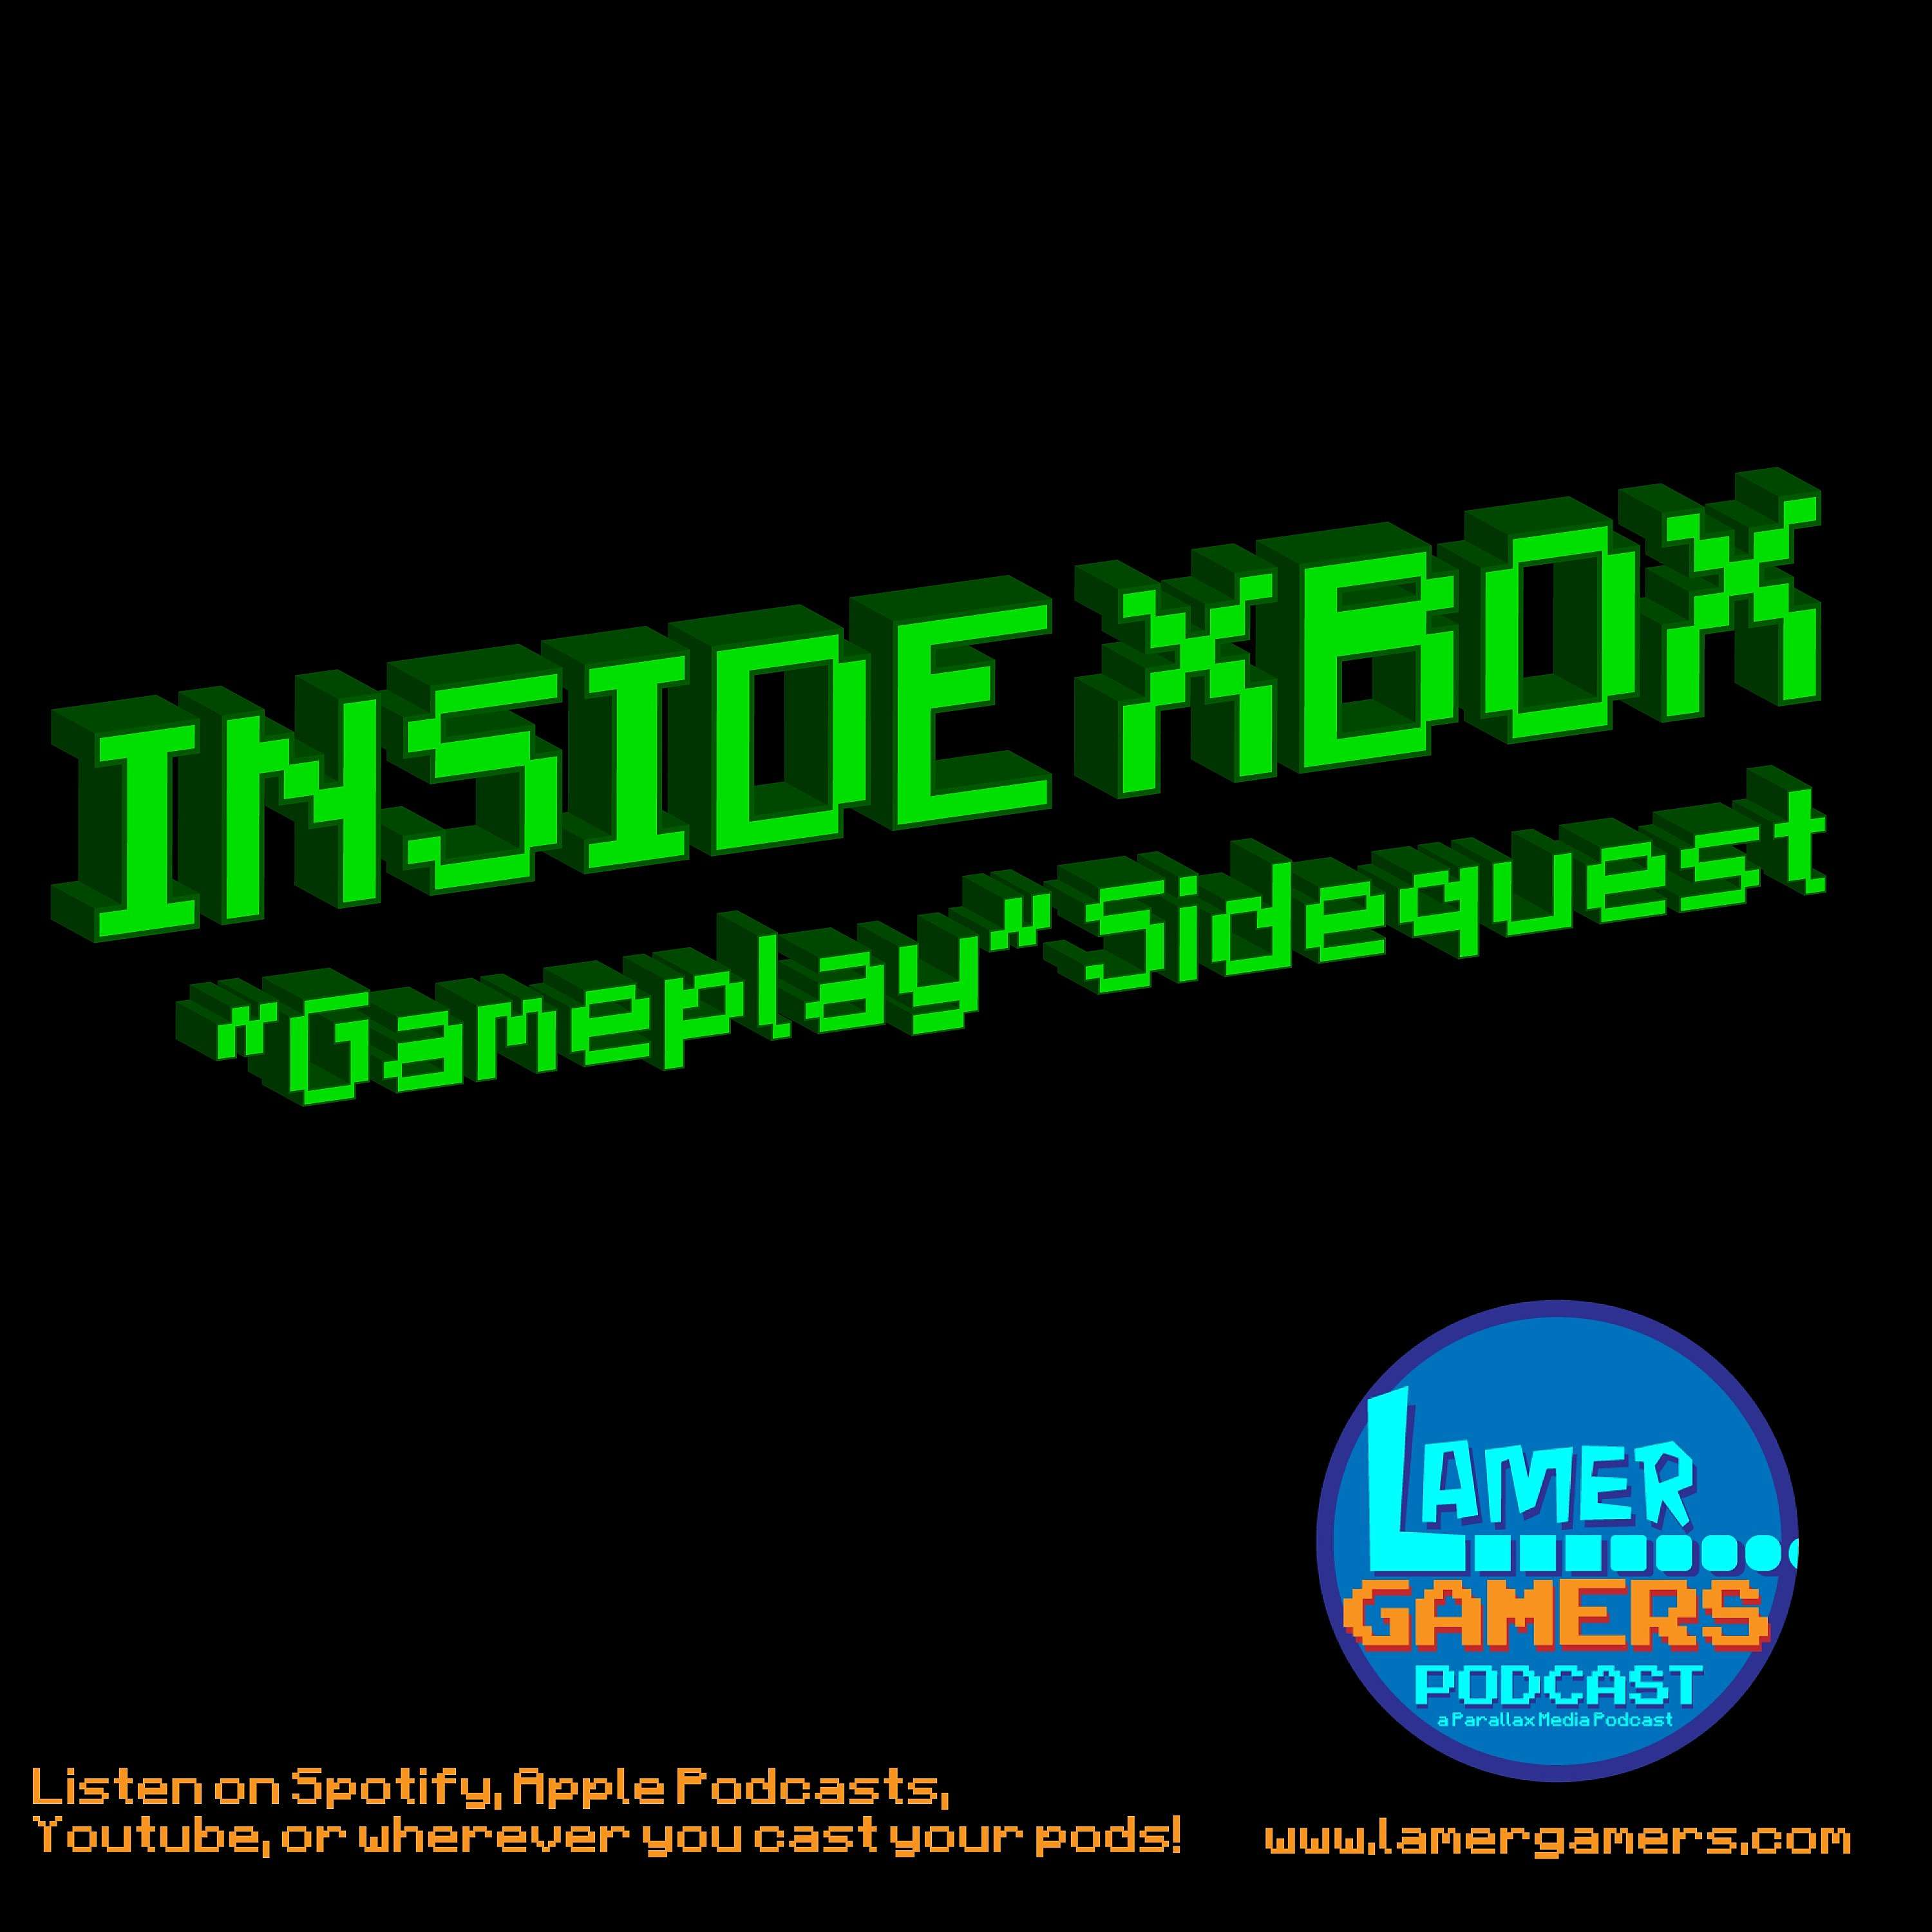 Inside Xbox Series X - Gameplay? Sidequest Edition